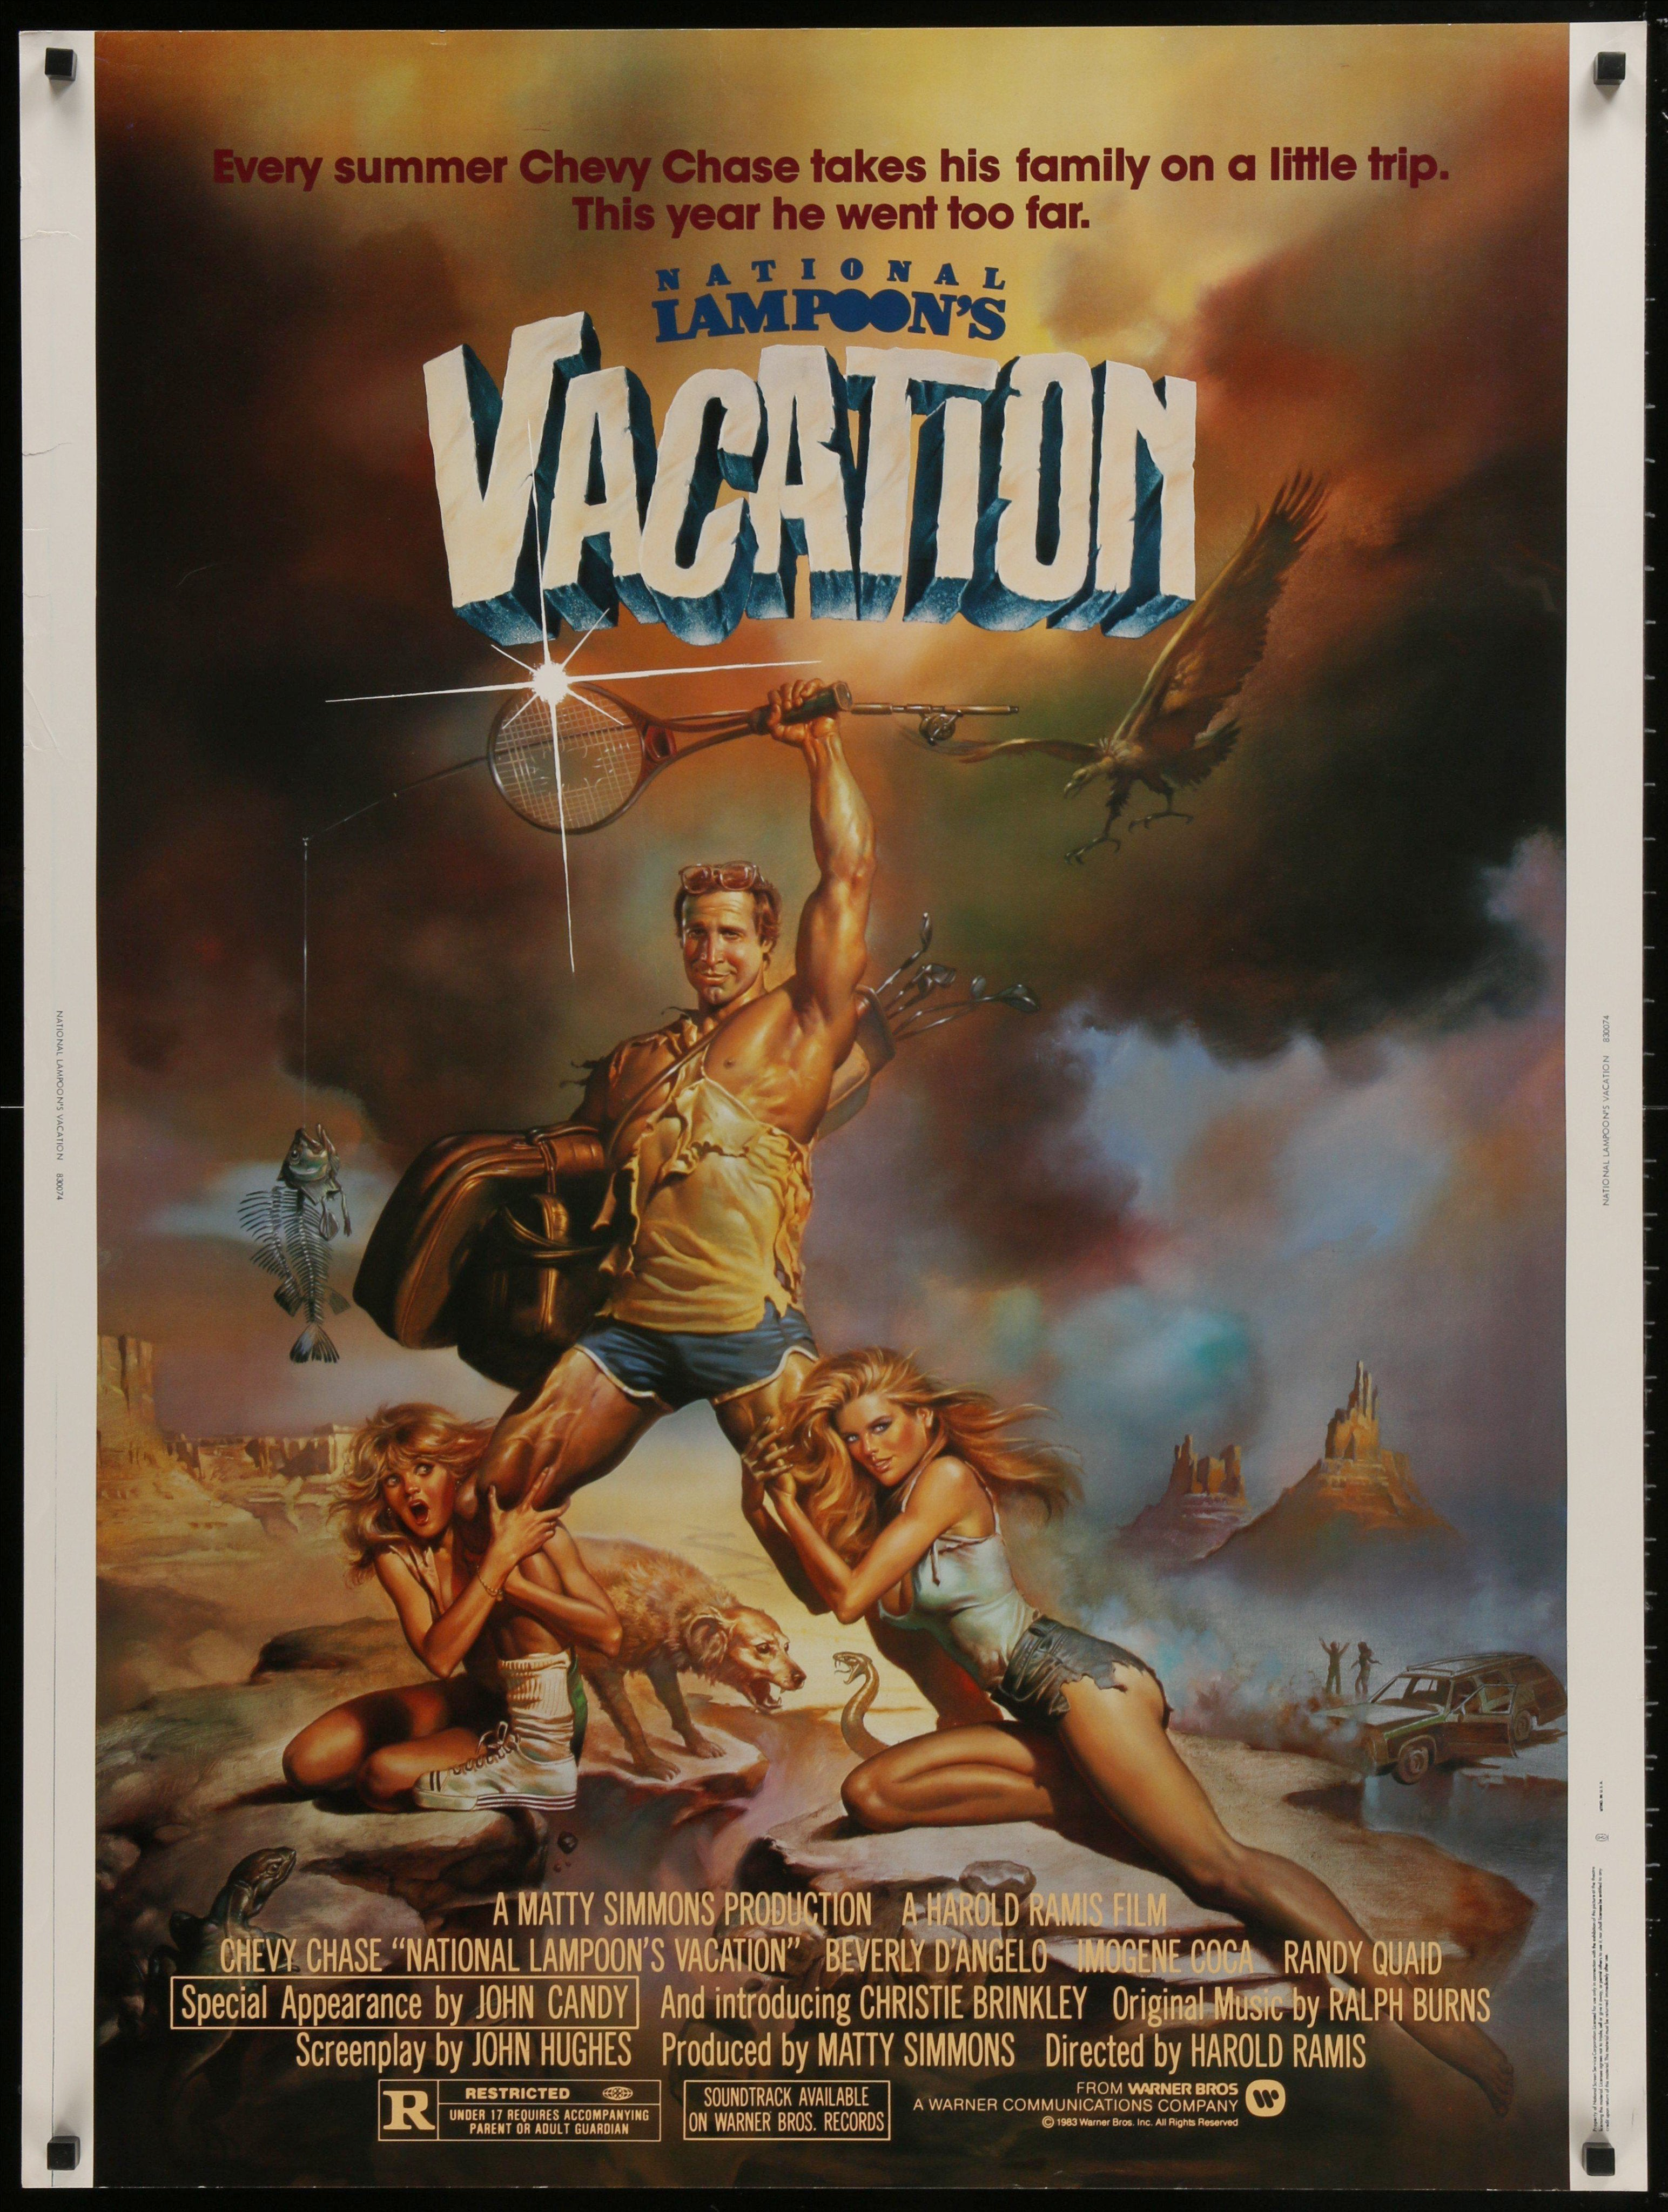 National Lampoon's Vacation Vintage Movie Poster